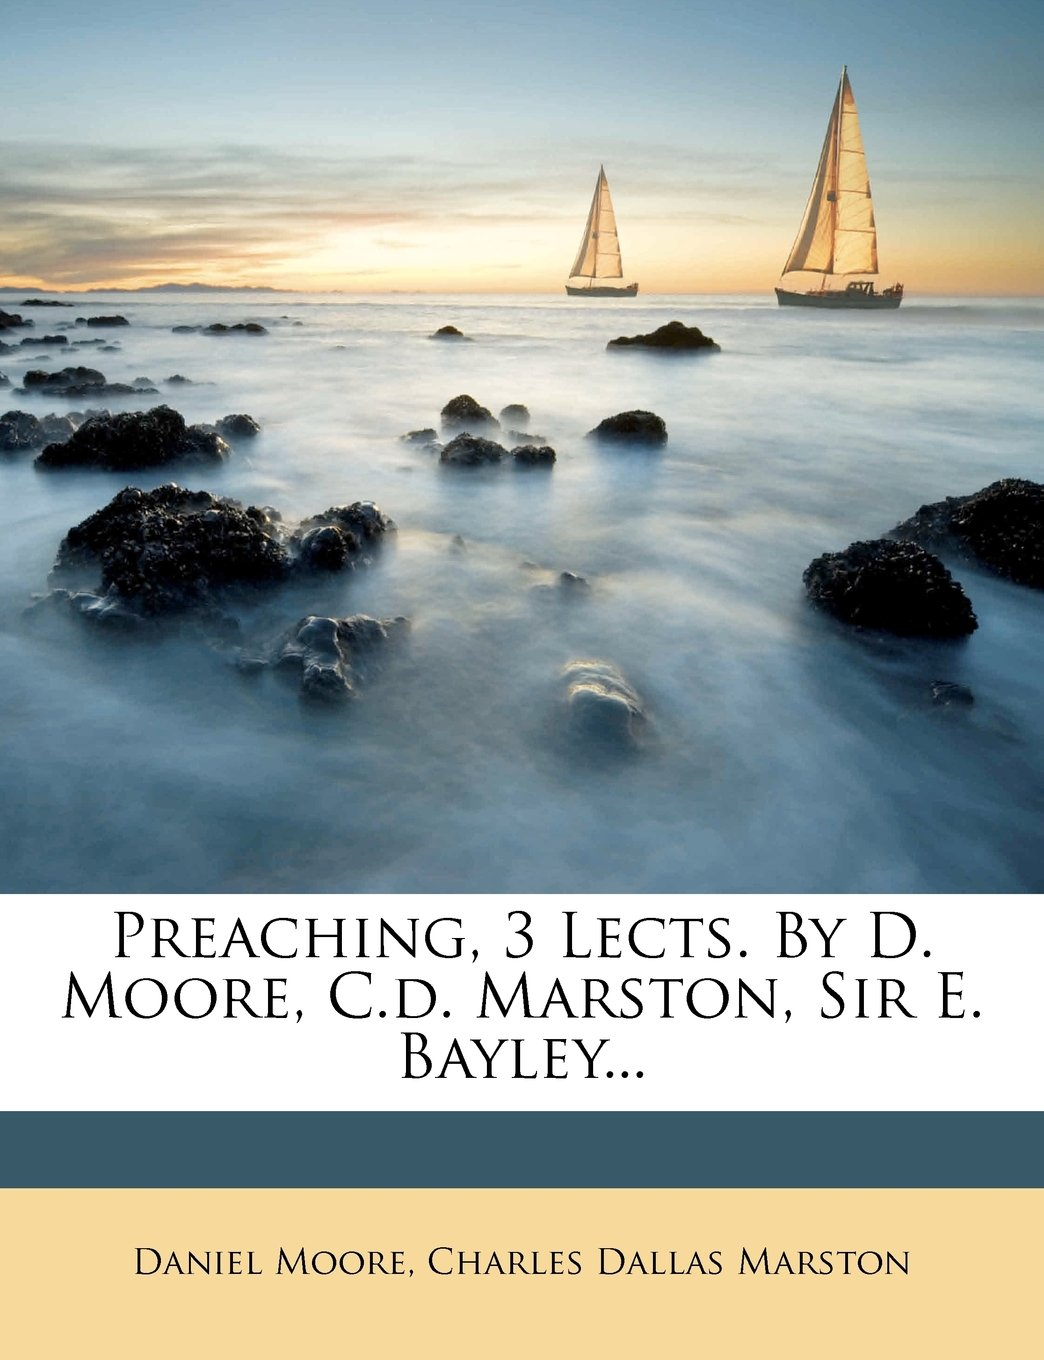 Preaching, 3 Lects. By D. Moore, C.d. Marston, Sir E. Bayley... PDF